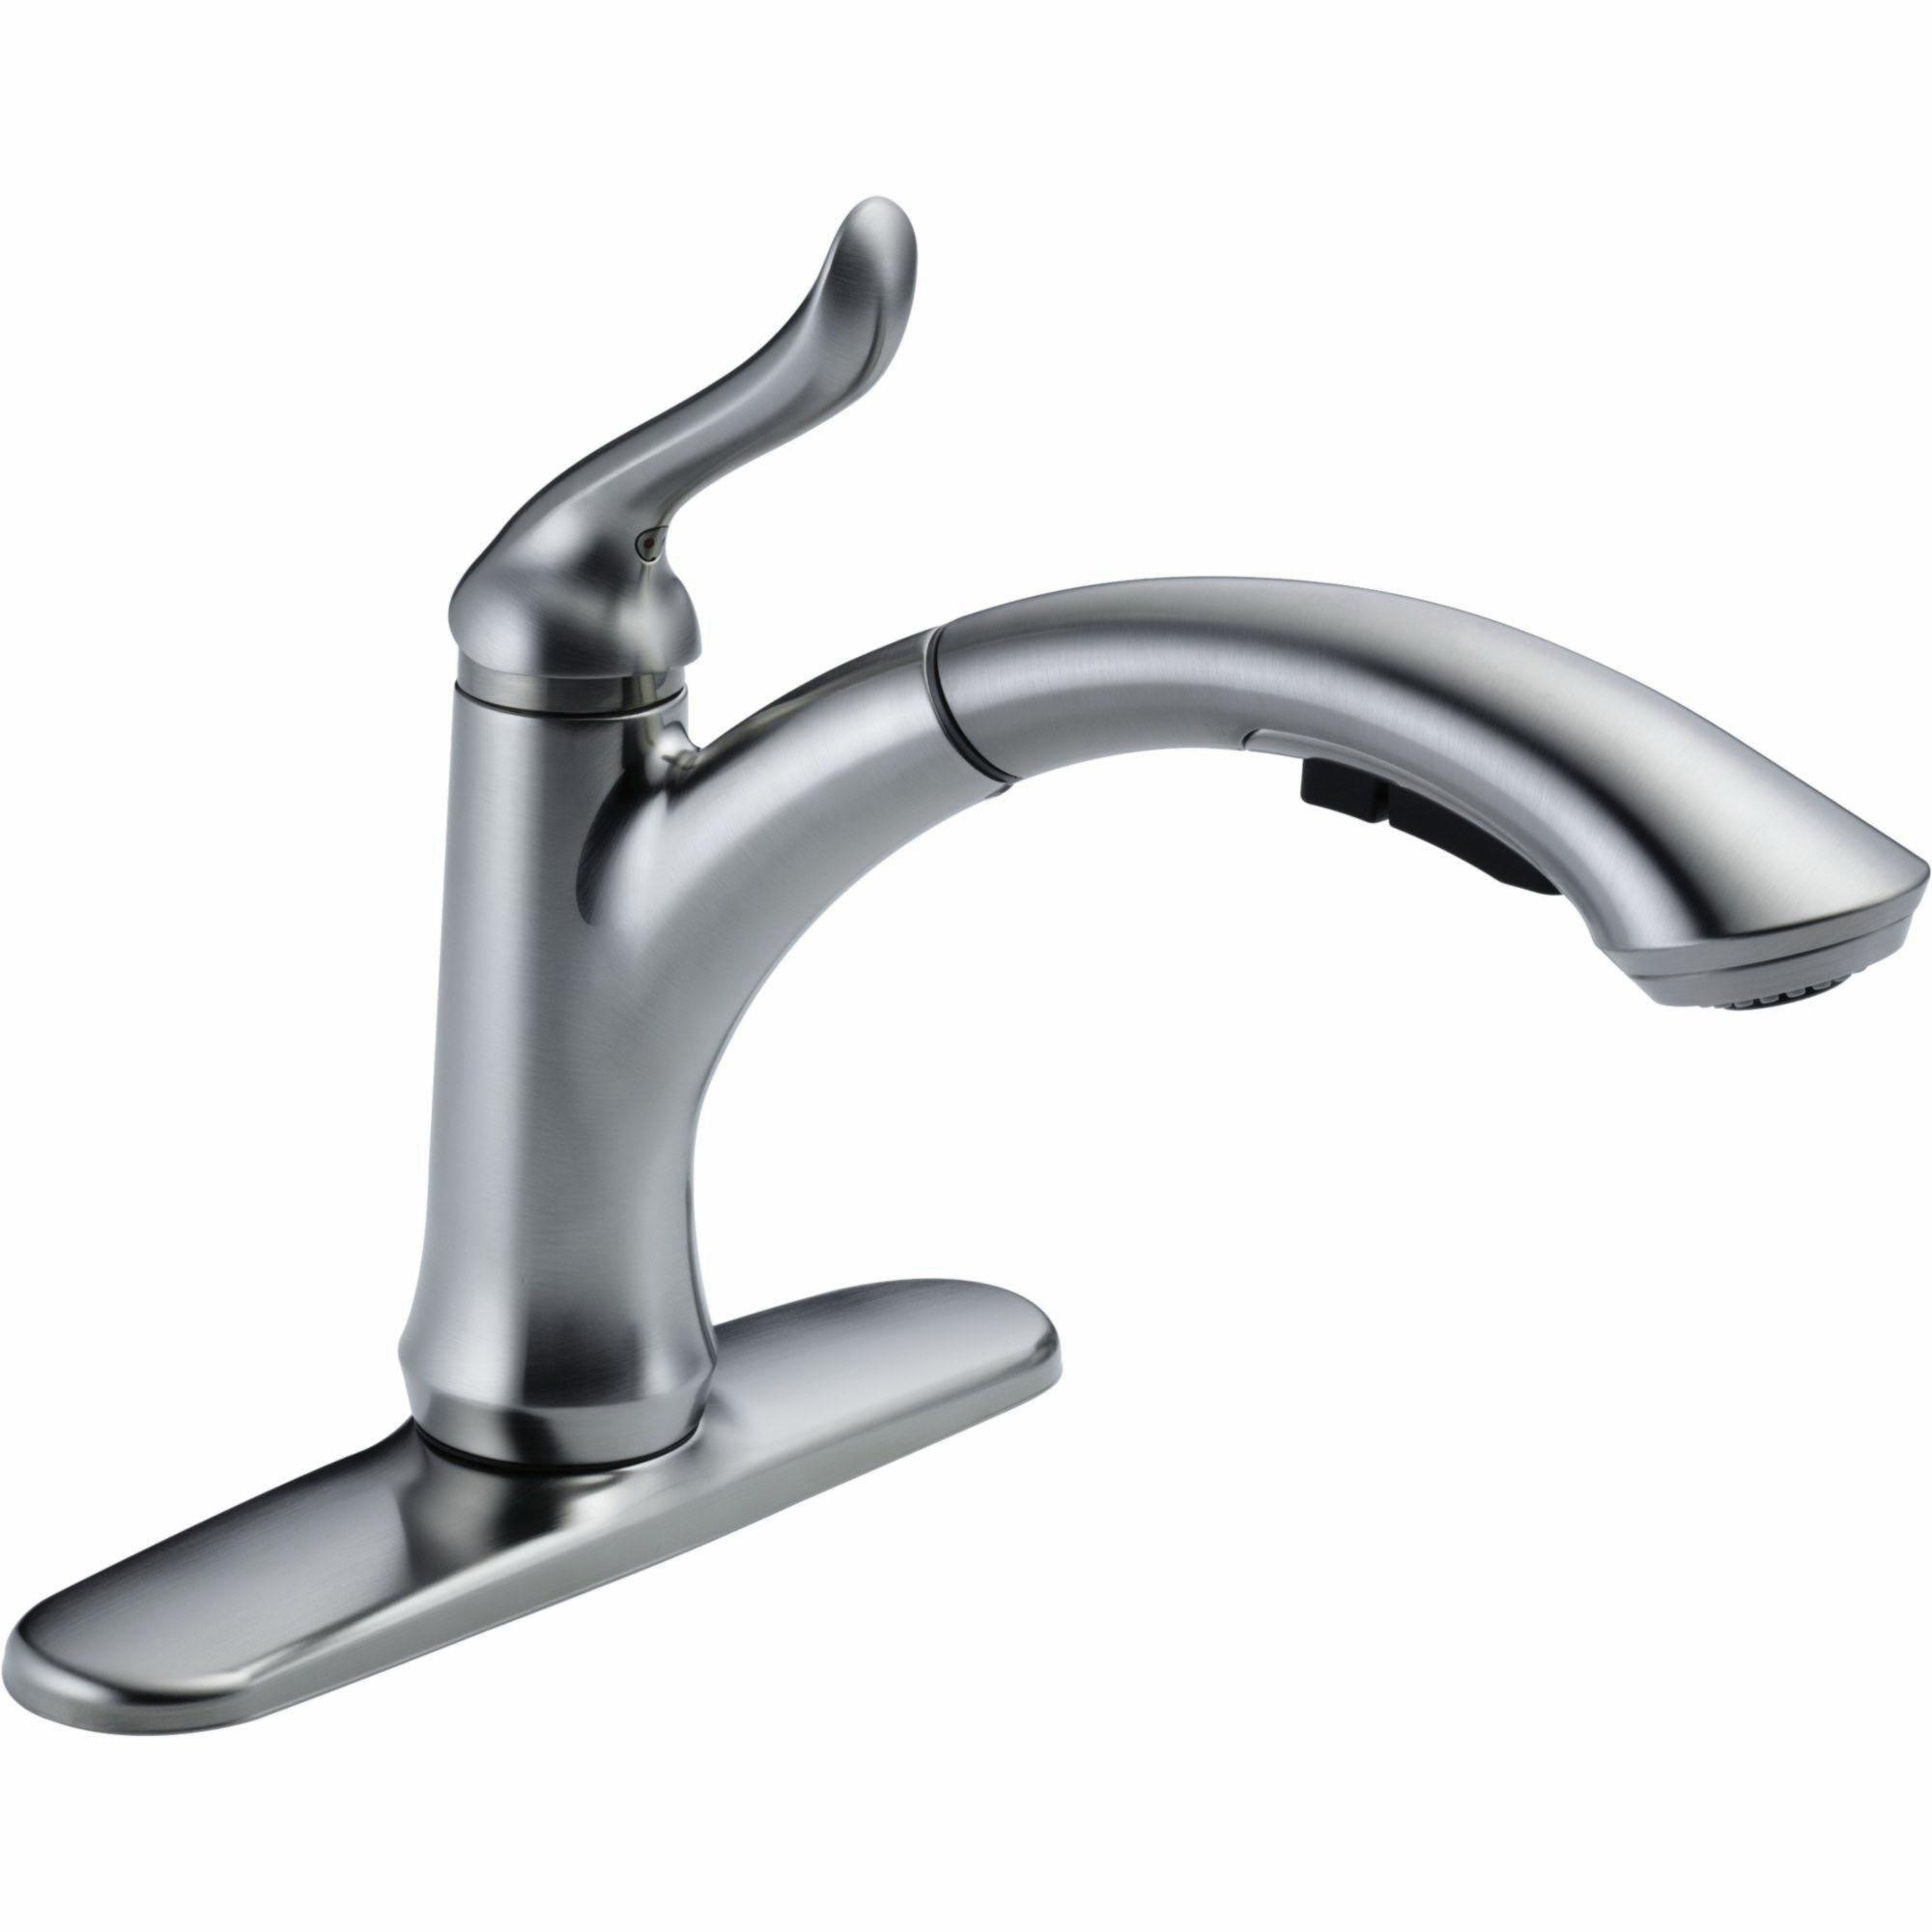 Fixtures & Accessories Kitchen Faucets & Potfillers Pull Down